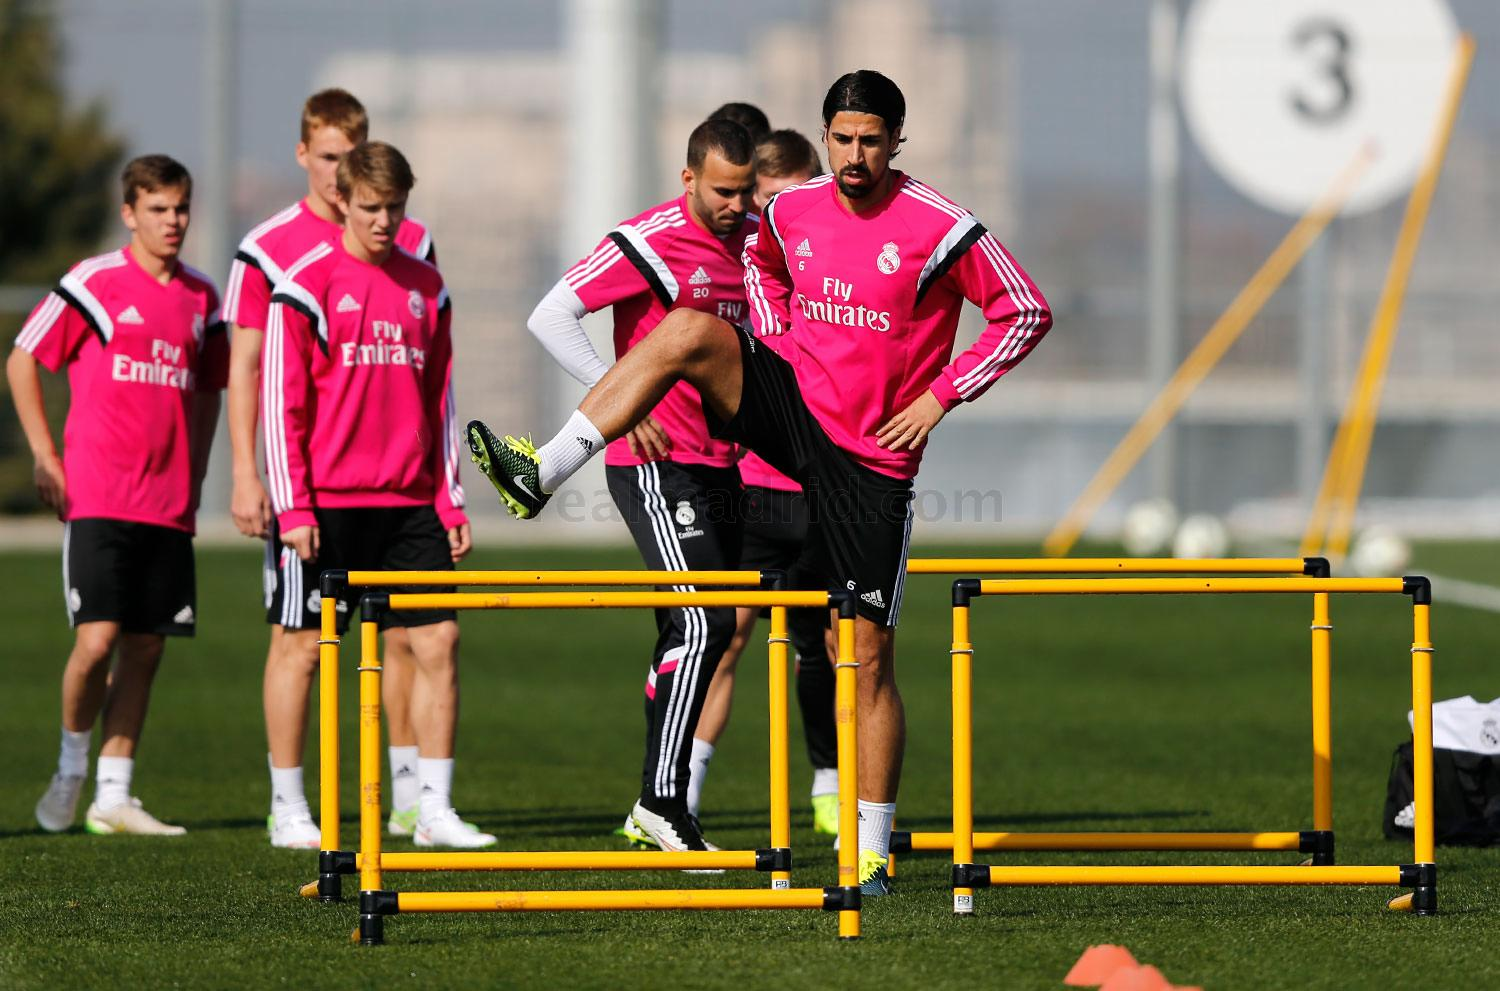 Real Madrid - Entrenamiento del Real Madrid - 03-03-2015